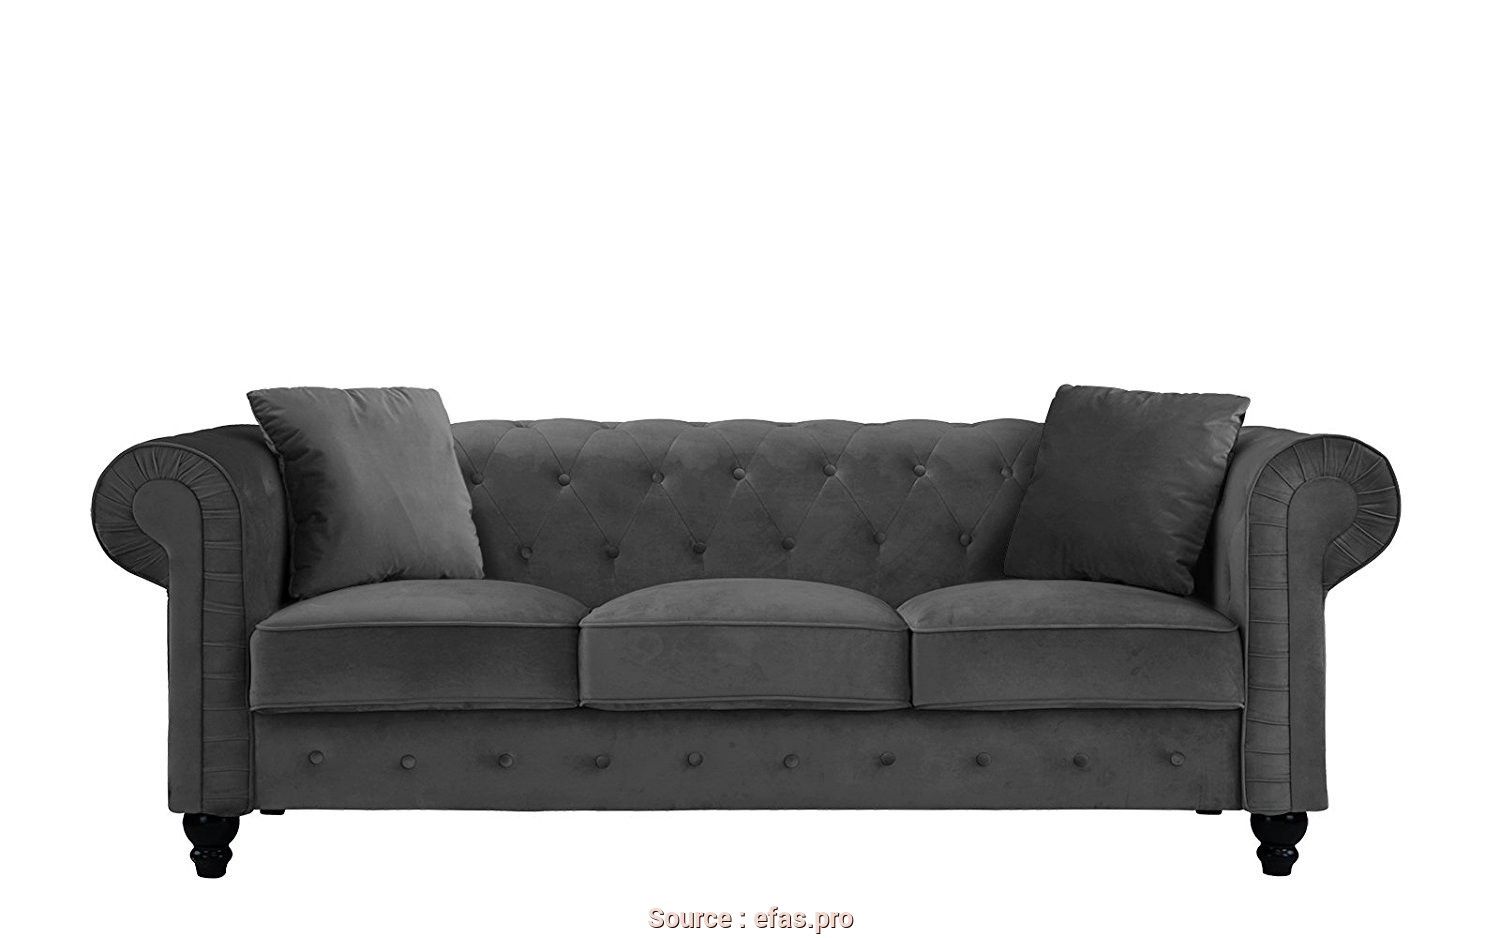 Divano Chesterfield Outlet, Grande Divano Roma Chesterfield Sofa : Divano Roma Furniture Classic Velvet Scroll, Tufted Button